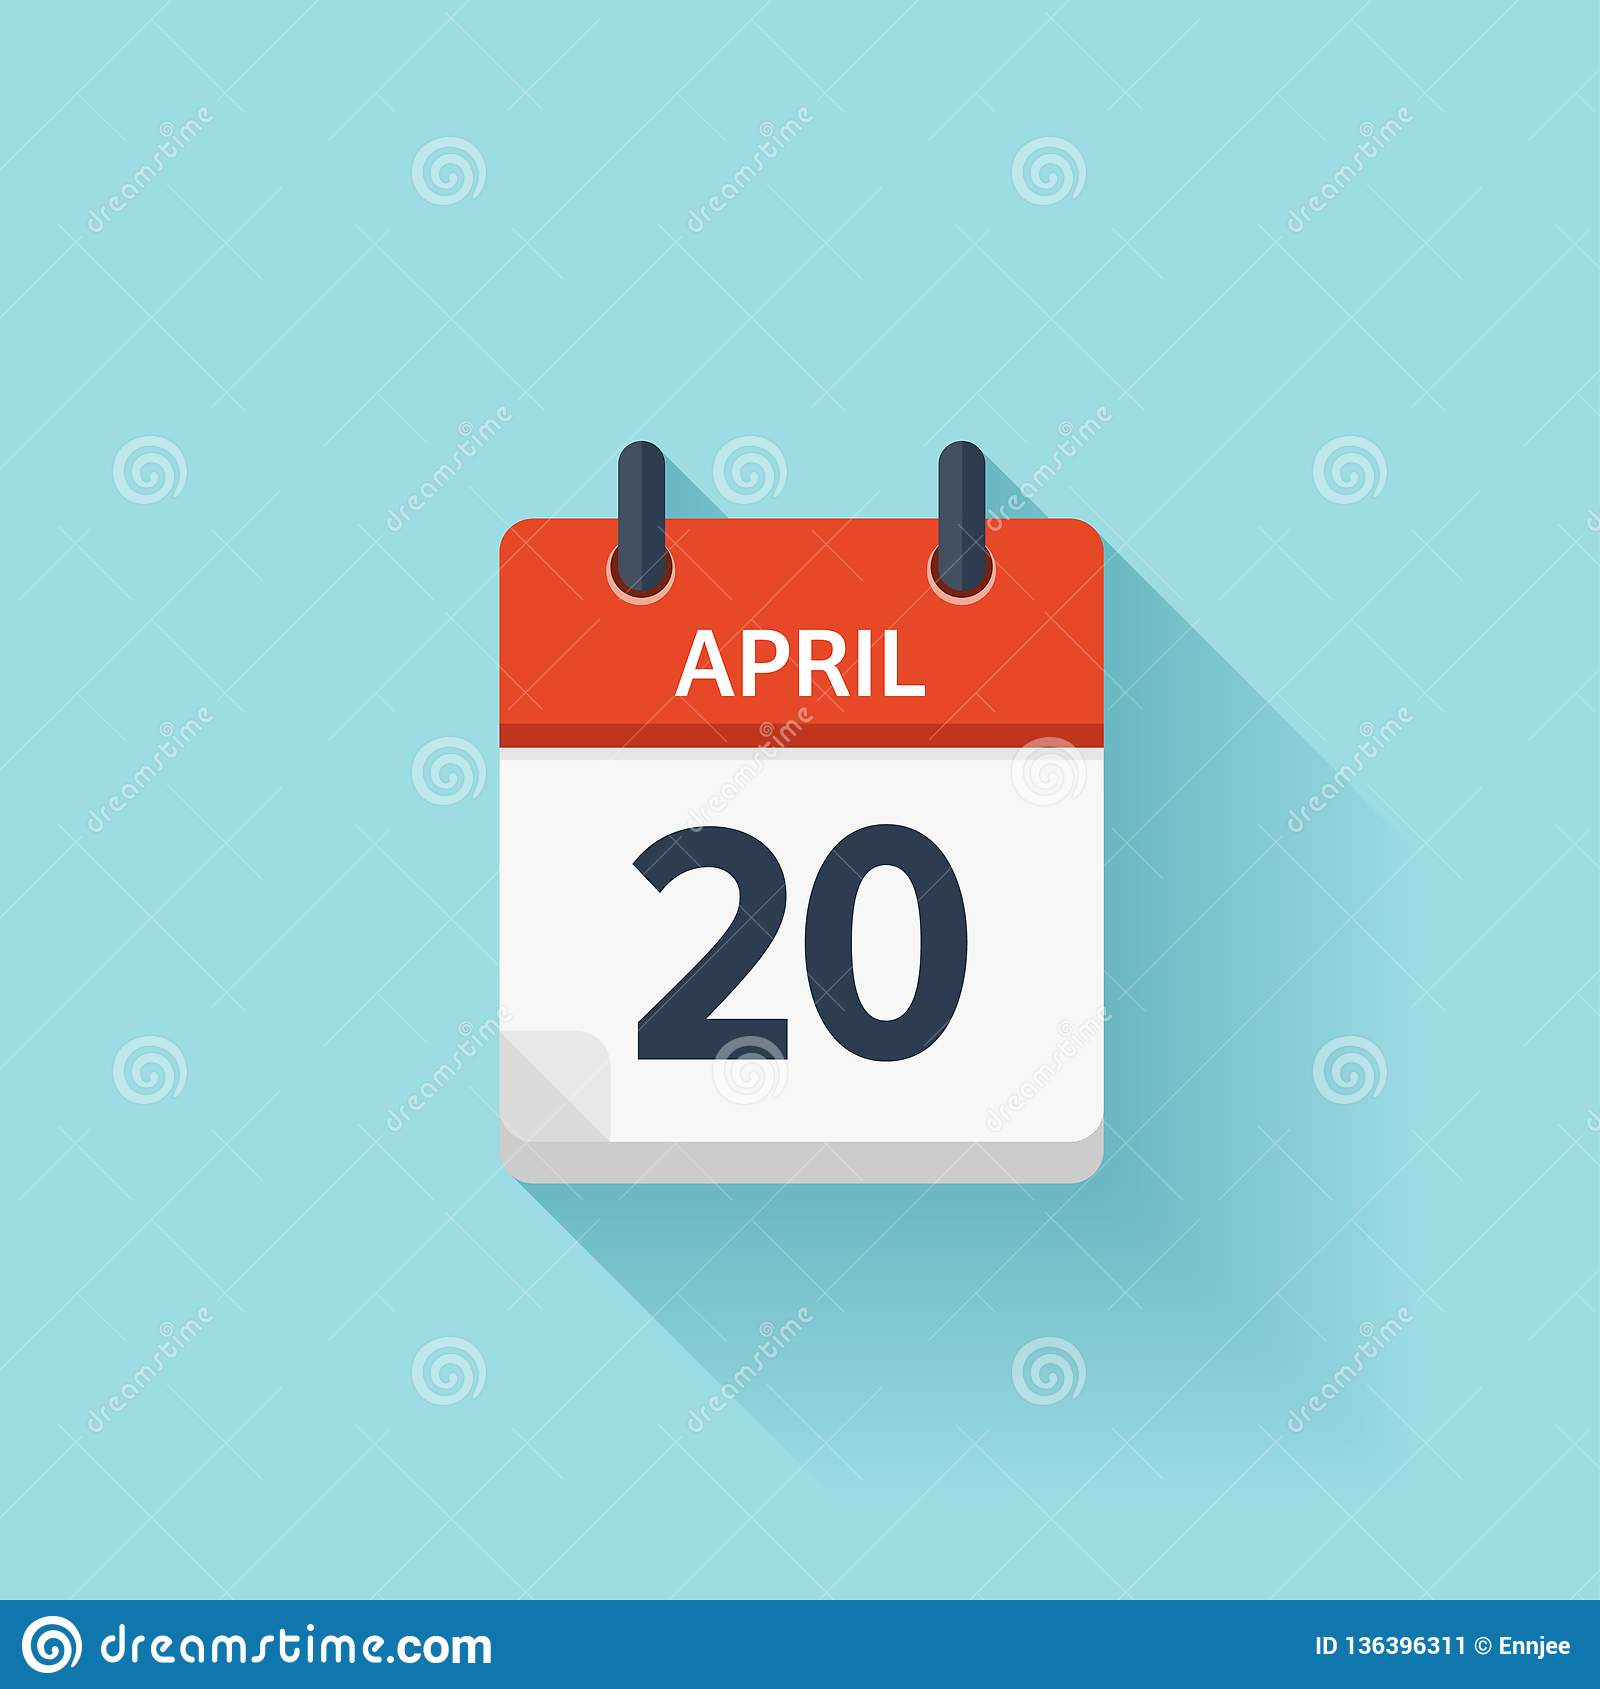 Daily Holiday Calendar.April 20 Vector Flat Daily Calendar Icon Date And Time Day Month